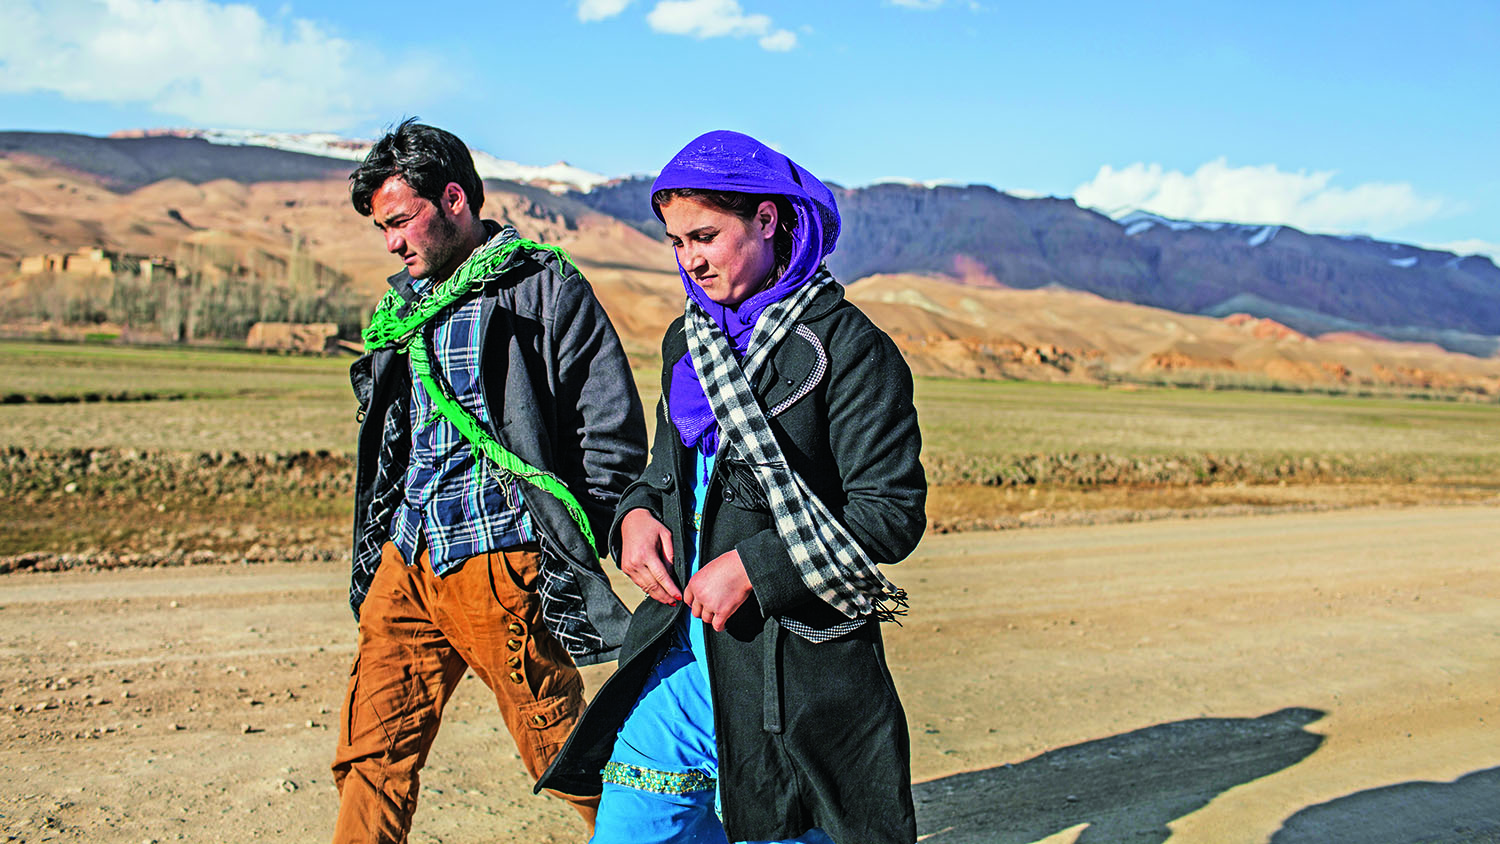 The lovers: The true story of Afghanistan's Romeo and Juliet